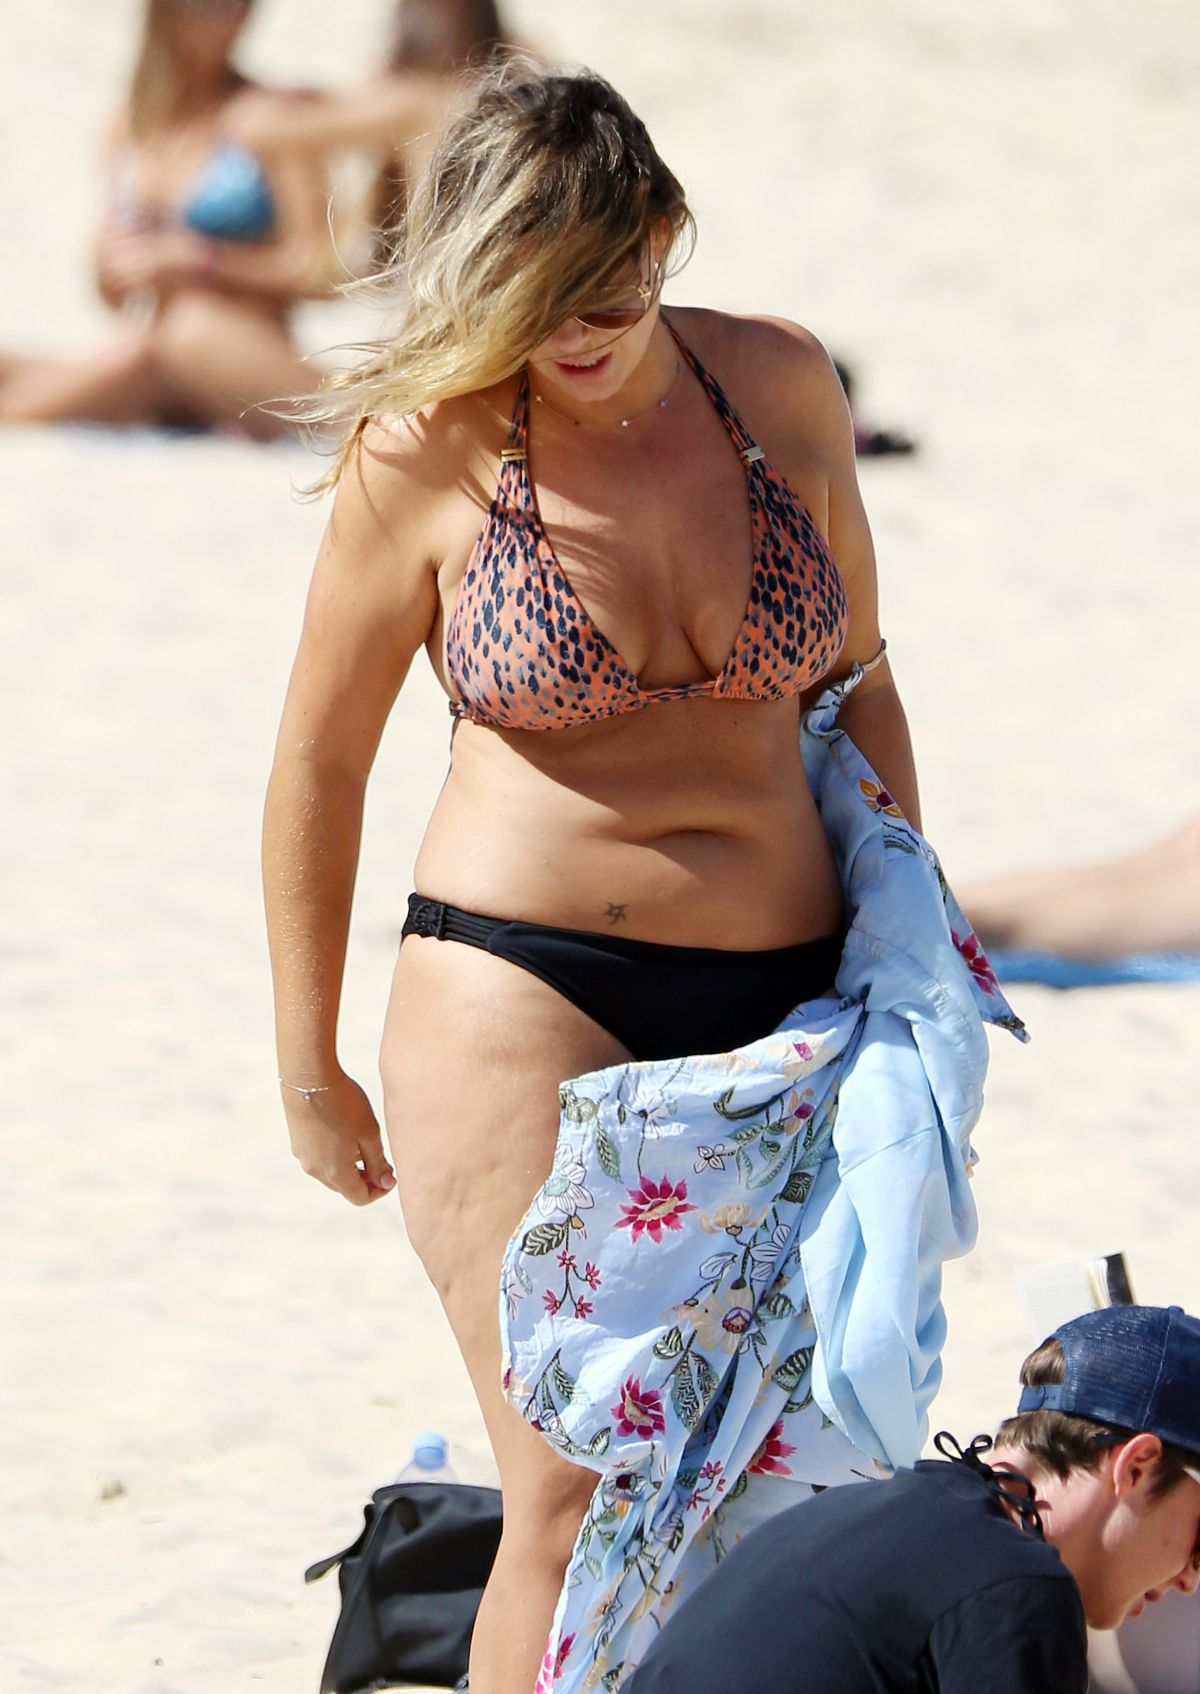 Fiona Falkiner in Bikini at Coogee Beach in Sydney Pic 12 of 35